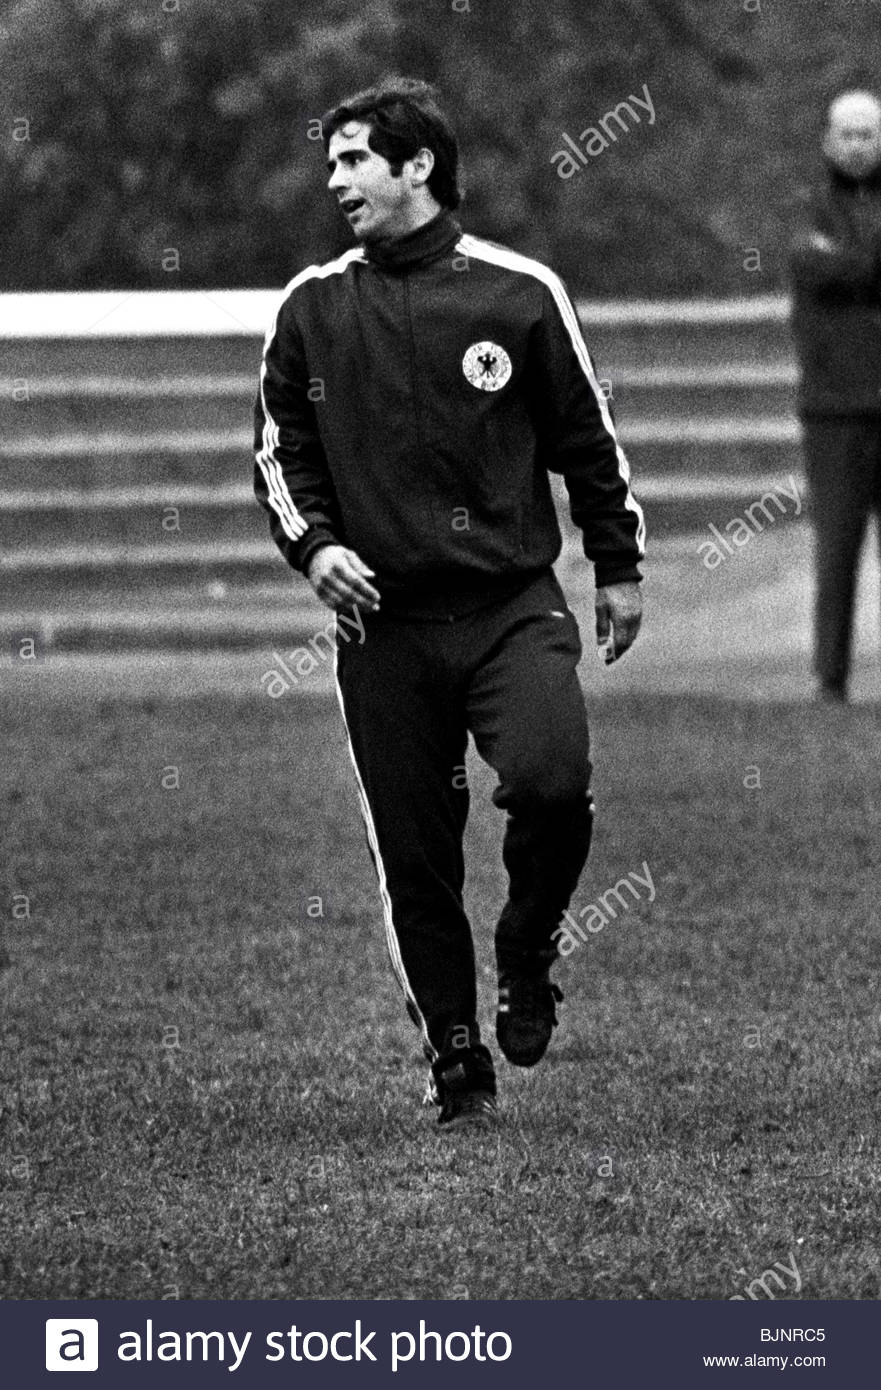 APRIL 1969 West Germany s Gerd Muller during training Stock